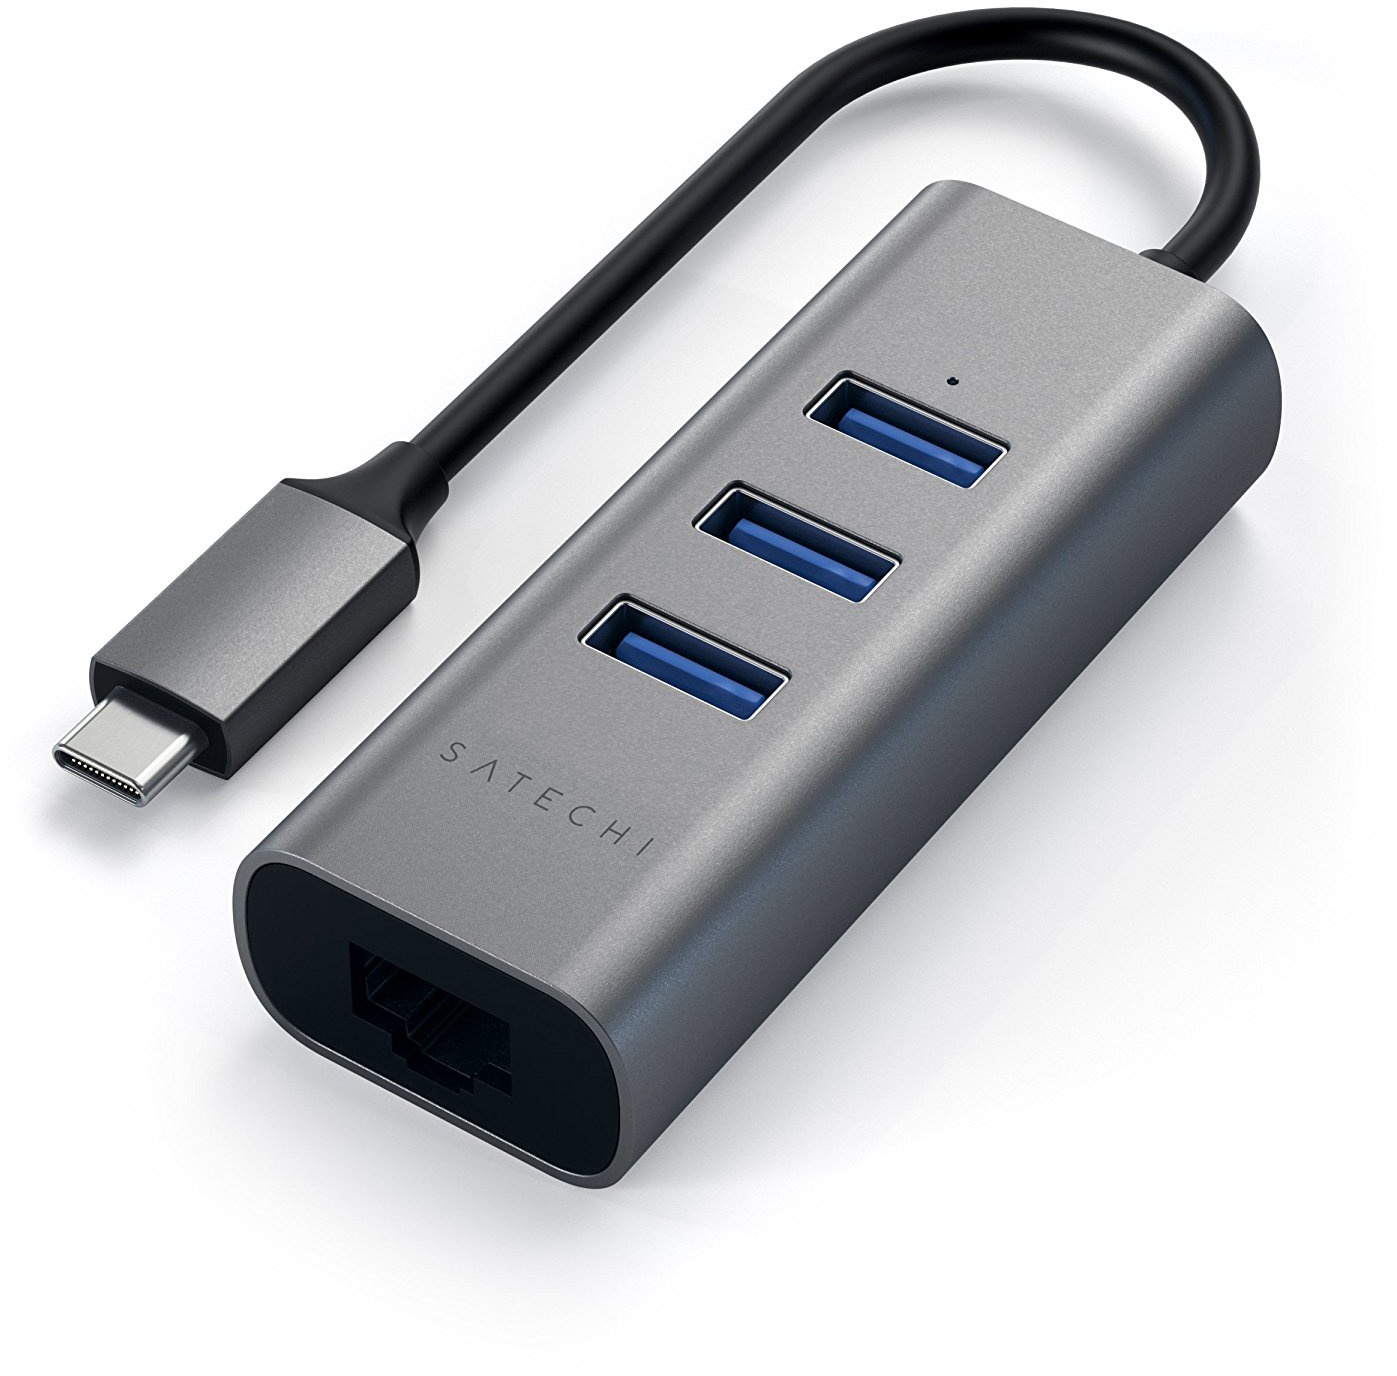 Хаб TYPE-C 2-IN-1 USB 3.0 ALUMINUM 3 PORT HUB AND ETHERNET PORT grey расширитель портов ввода вывода belkin 4 port hub usb c cbl micro b 3 1 usb 3 0